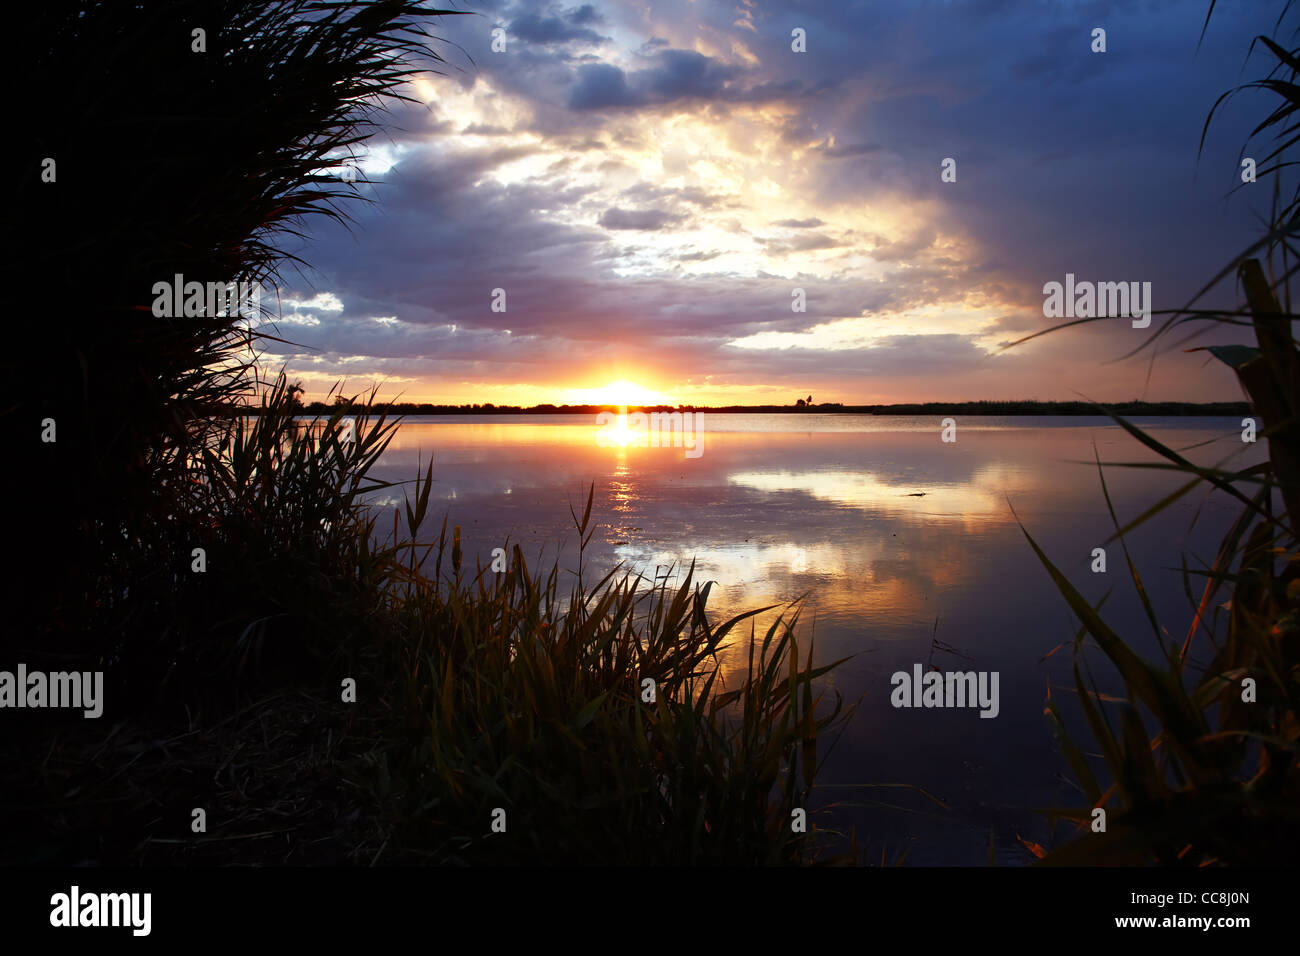 Sunrise on like and clouds - Stock Image